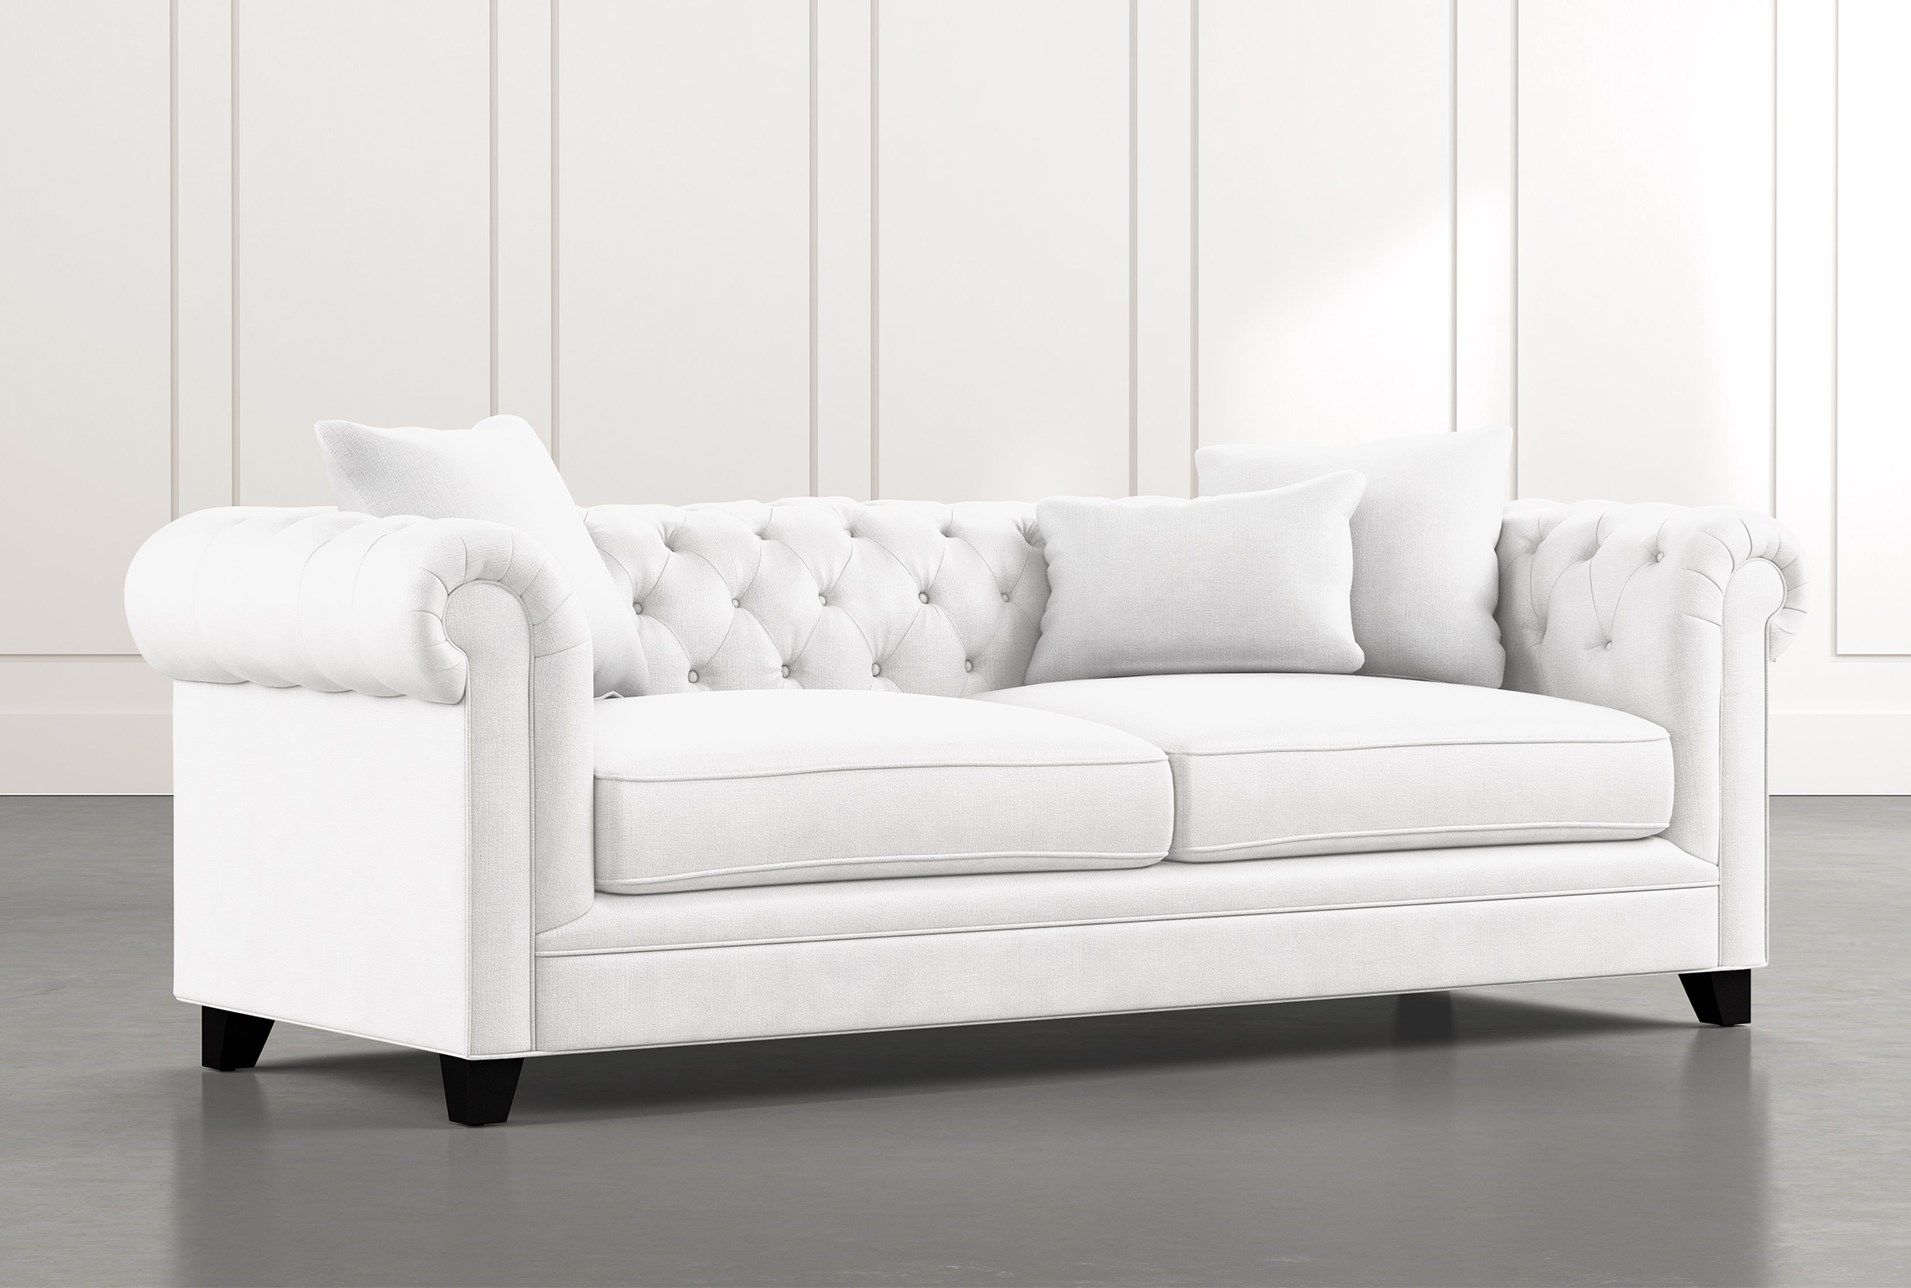 Patterson Iii White Sofa In 2020 White Sofas White Sofa Living Room Couch And Loveseat